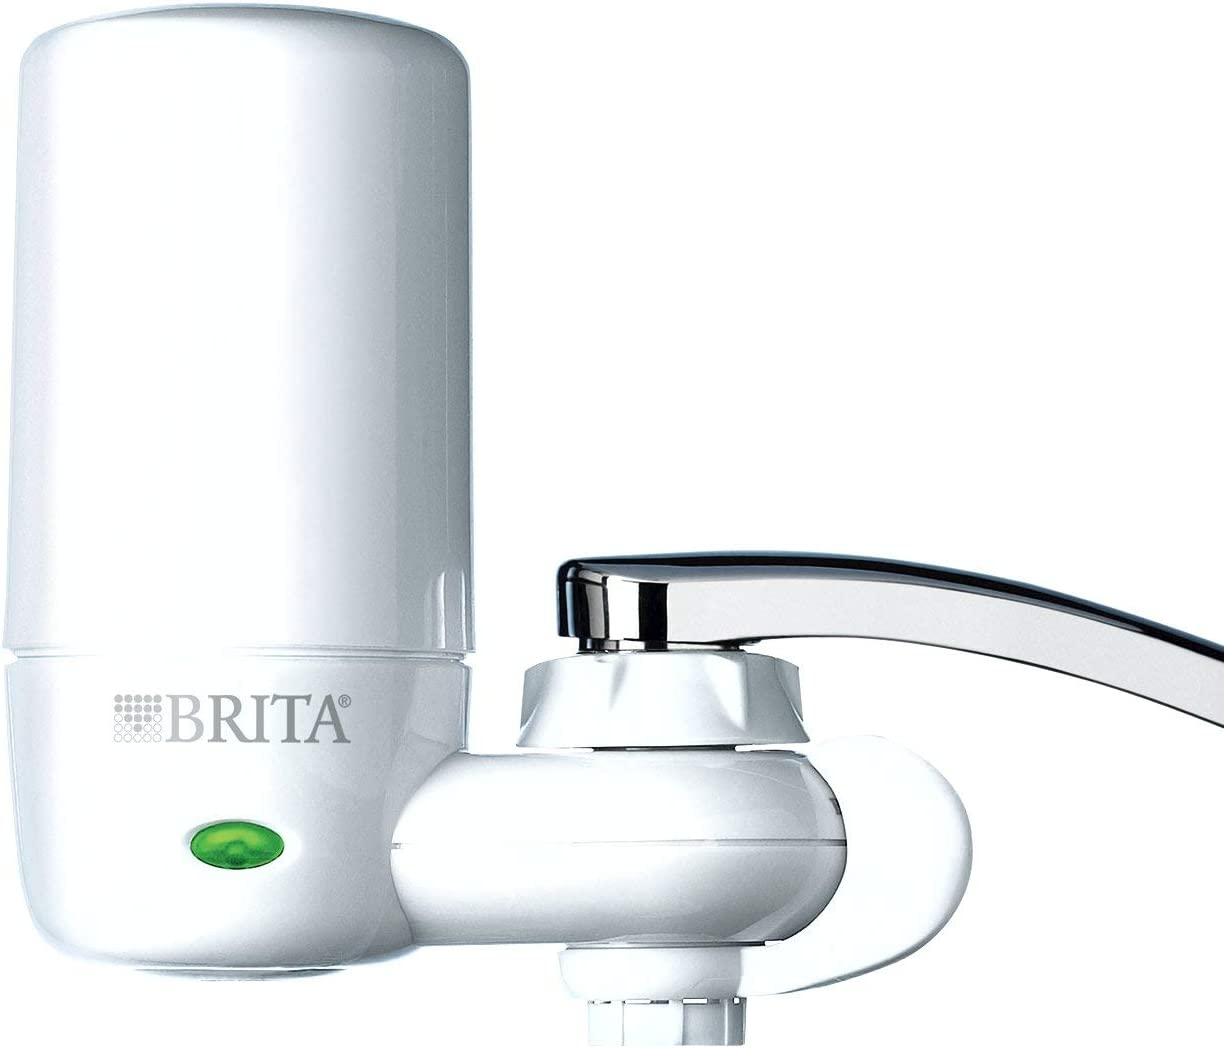 Brita 10060258422013 On Tap Water Filter Reviews